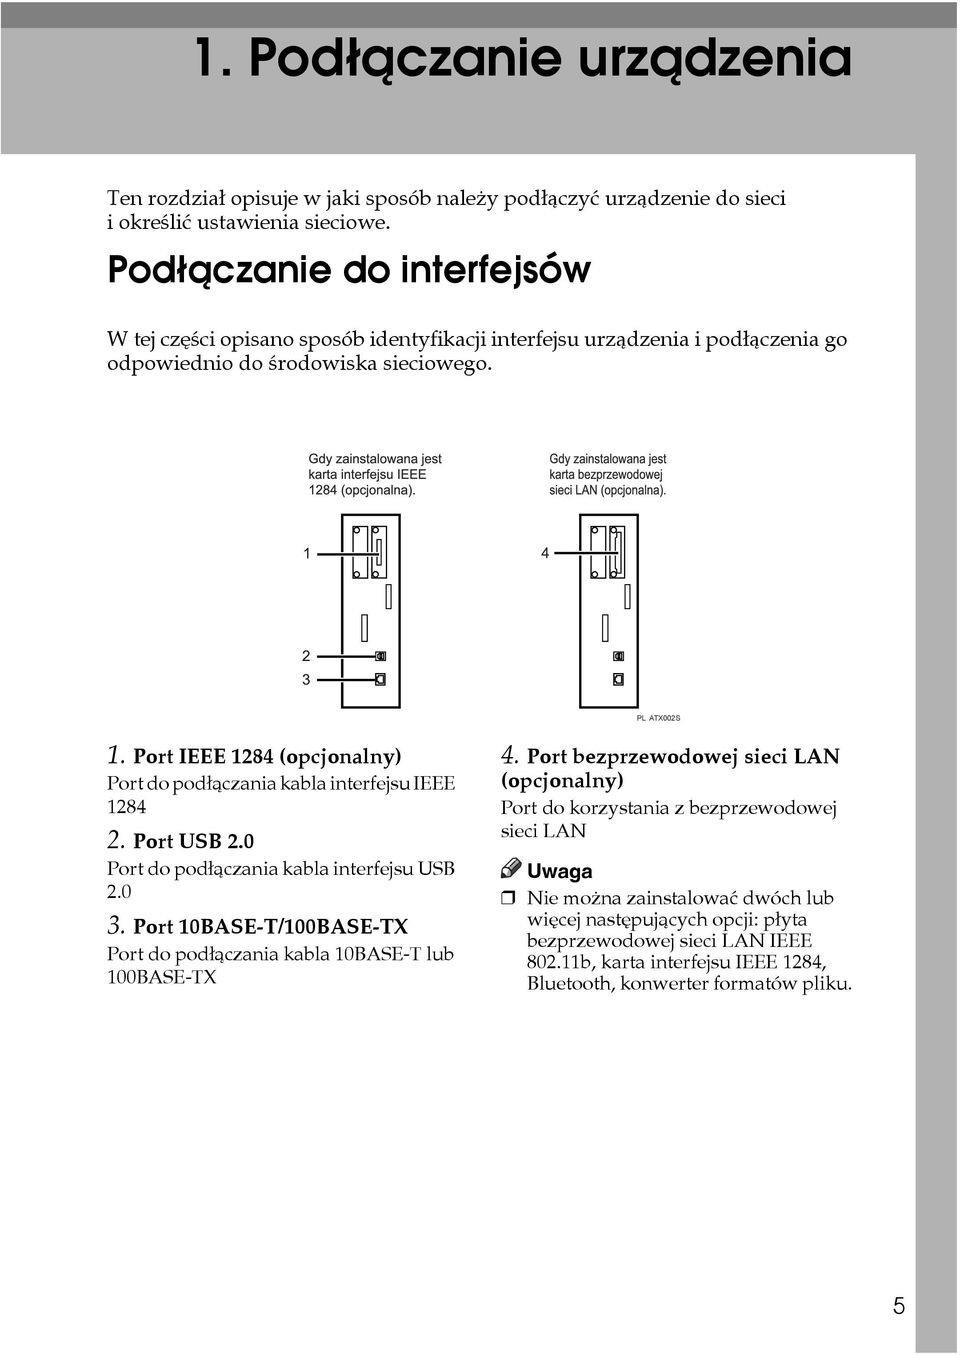 Port IEEE 1284 (opcjonalny) Port do podâàczania kabla interfejsu IEEE 1284 2. Port USB 2.0 Port do podâàczania kabla interfejsu USB 2.0 3.